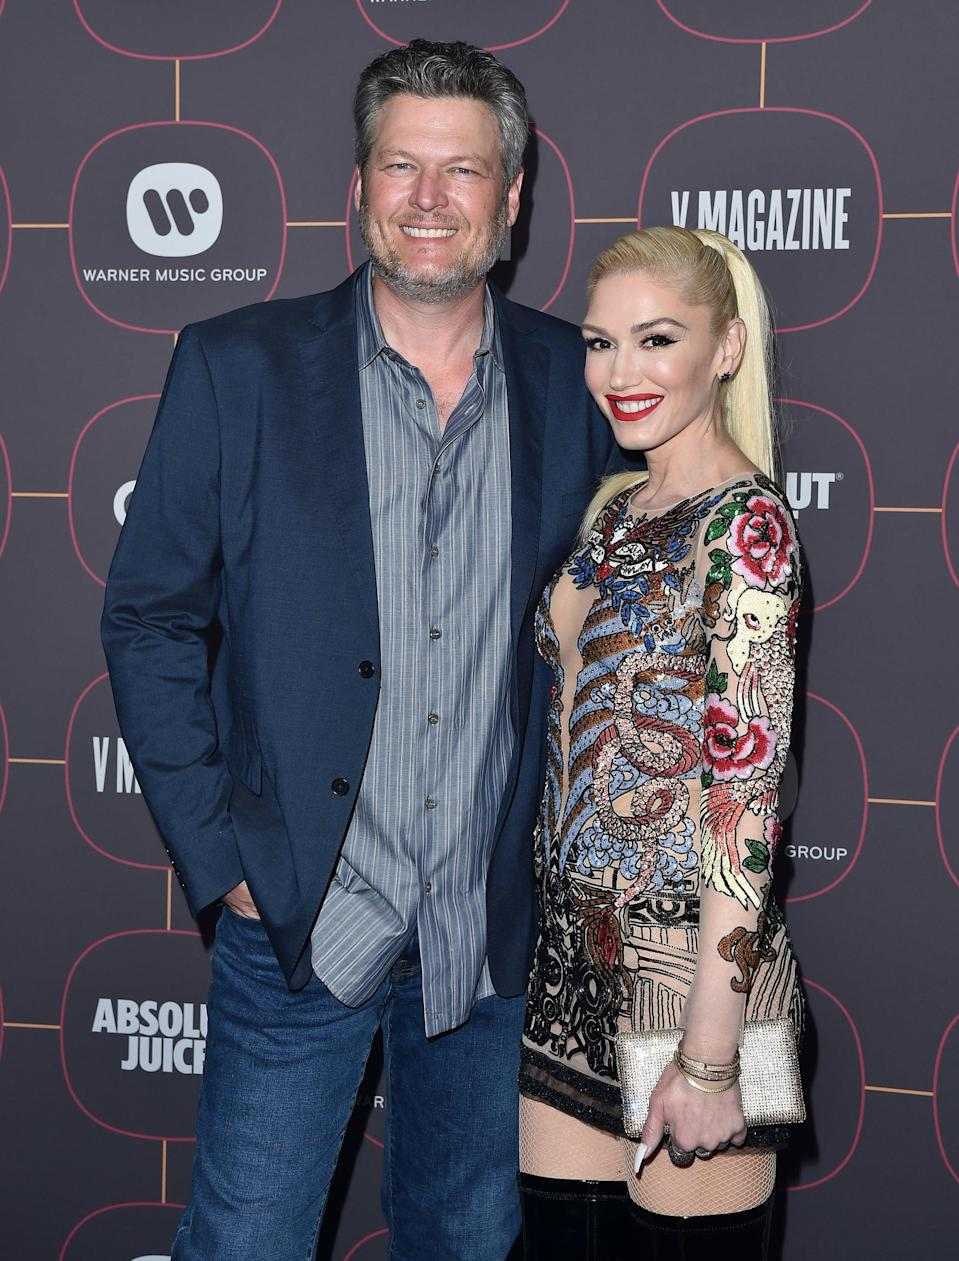 """<p>Stefani and Shelton first met on <strong>The Voice</strong> in 2014, while she was still married to Rossdale and Shelton was still married to his second wife, singer Miranda Lambert. By the end of 2015, however, both their marriages were ending, and <strong>E! News</strong> reported that <a href=""""http://www.eonline.com/news/712391/exclusive-gwen-stefani-and-blake-shelton-s-pda-filled-weekend-prove-they-re-more-than-friends"""" class=""""link rapid-noclick-resp"""" rel=""""nofollow noopener"""" target=""""_blank"""" data-ylk=""""slk:they spent a weekend together"""">they spent a weekend together</a> over <a class=""""link rapid-noclick-resp"""" href=""""https://www.popsugar.co.uk/Halloween"""" rel=""""nofollow noopener"""" target=""""_blank"""" data-ylk=""""slk:Halloween"""">Halloween</a>, looking decidedly nonplatonic. </p> <p>In November, <a href=""""http://www.eonline.com/news/713073/blake-shelton-and-gwen-stefani-are-dating"""" class=""""link rapid-noclick-resp"""" rel=""""nofollow noopener"""" target=""""_blank"""" data-ylk=""""slk:Shelton's team officially confirmed the relationship"""">Shelton's team officially confirmed the relationship</a> to <strong>E! News</strong> and other outlets. After that announcement, they started appearing together more in public and on social media, as well as later seasons of <strong>The Voice</strong>. After years of adorable pictures and shared musical performances, <a href=""""http://www.instagram.com/p/CG2tZeonC9m/"""" class=""""link rapid-noclick-resp"""" rel=""""nofollow noopener"""" target=""""_blank"""" data-ylk=""""slk:Stefani shared news of their engagement"""">Stefani shared news of their engagement</a> on Instagram on Oct. 27, posting a picture of them together with her showing off her ring. """"@blakeshelton yes please!"""" she captioned the photo, complete with an engagement ring emoji.</p>"""